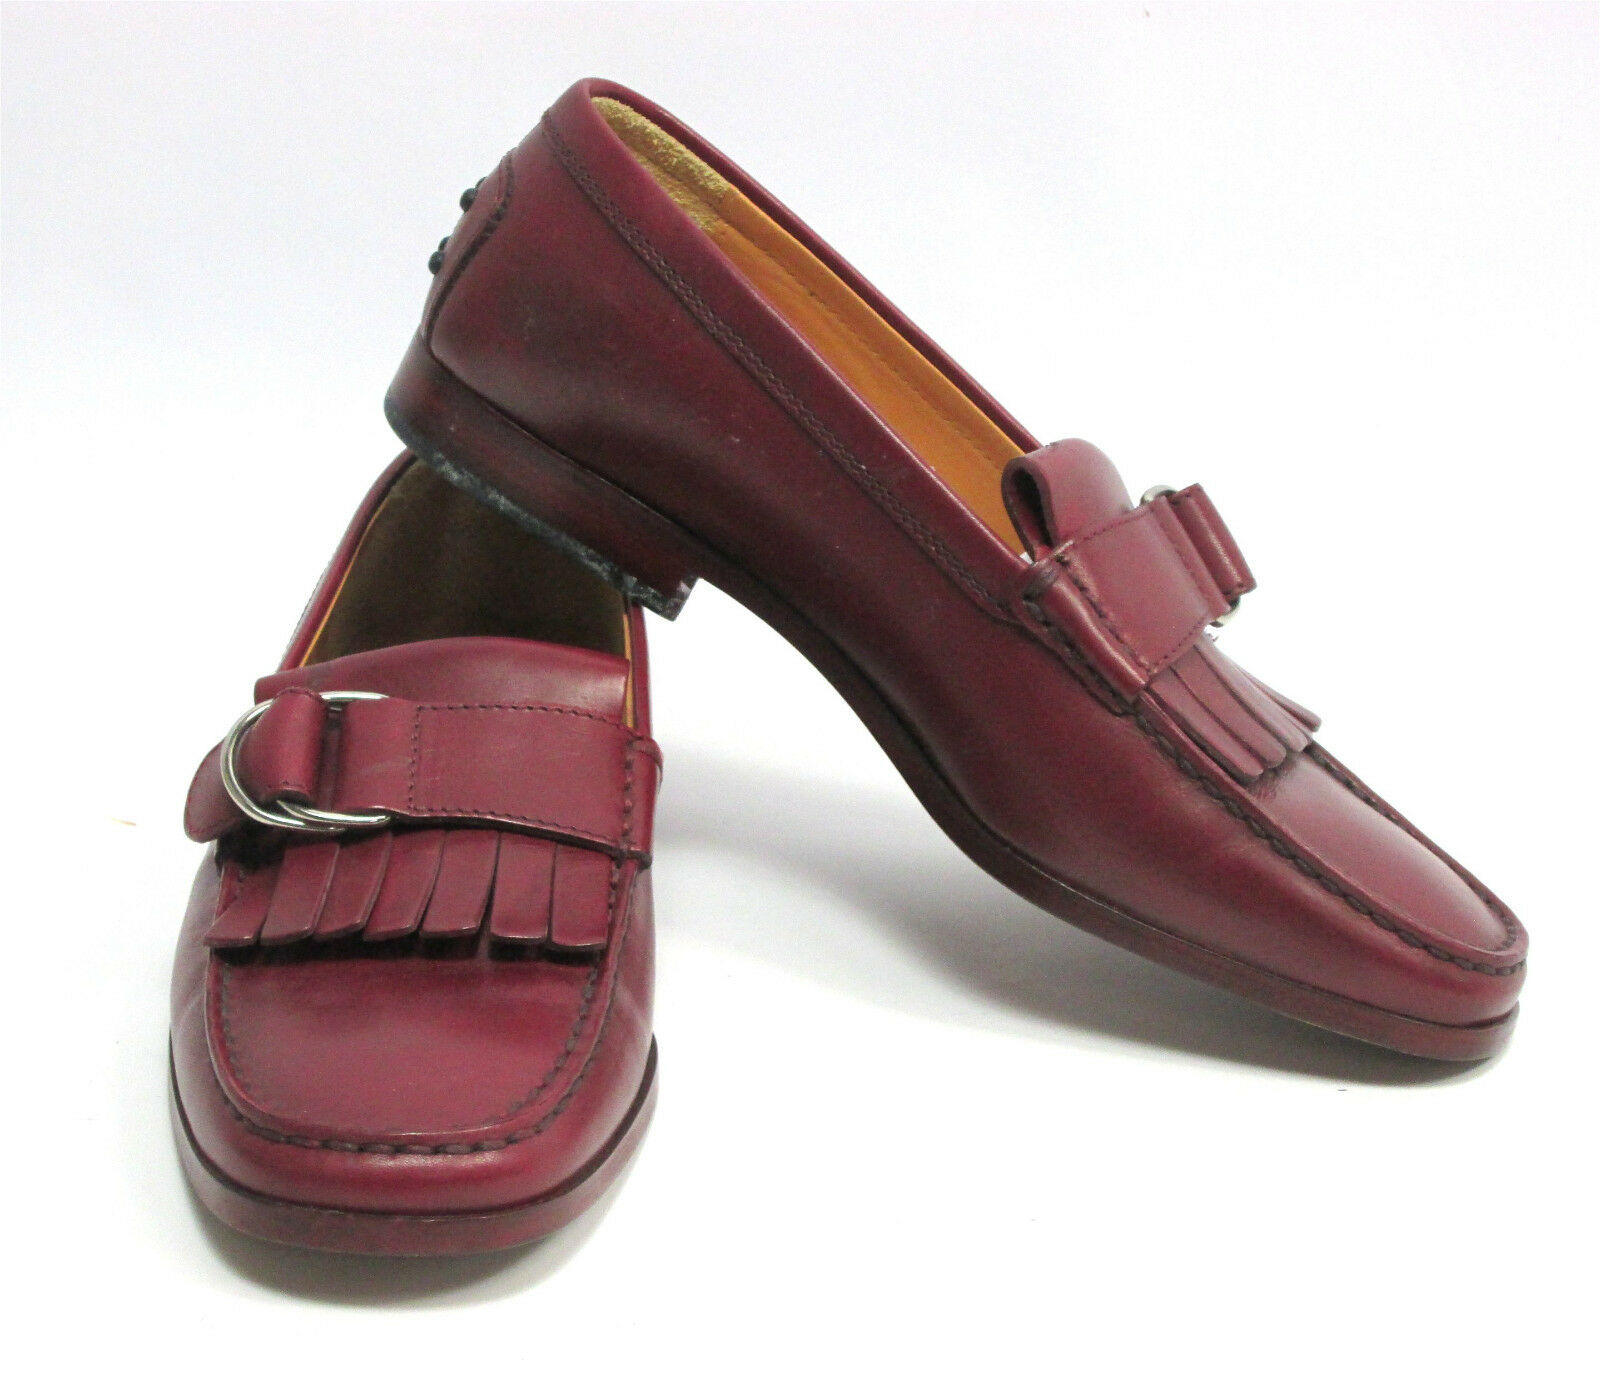 Tod's Damenschuhe ROT Maroon Fringe Loafers Schuhes Größe 7